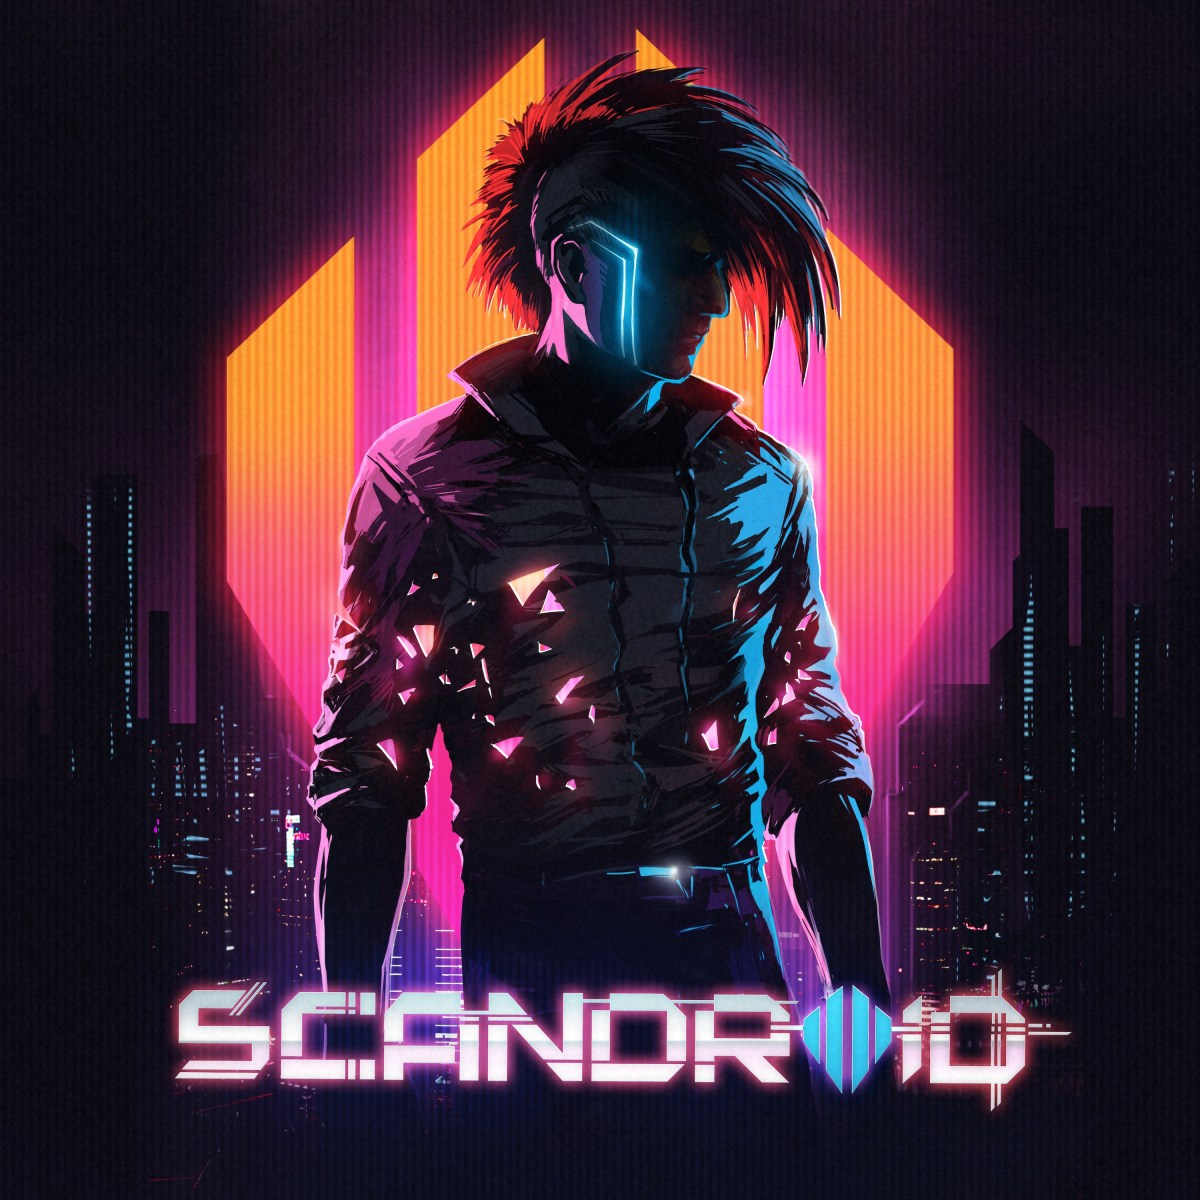 ALBUM REVIEW: Scandroid - Scandroid (English summary)